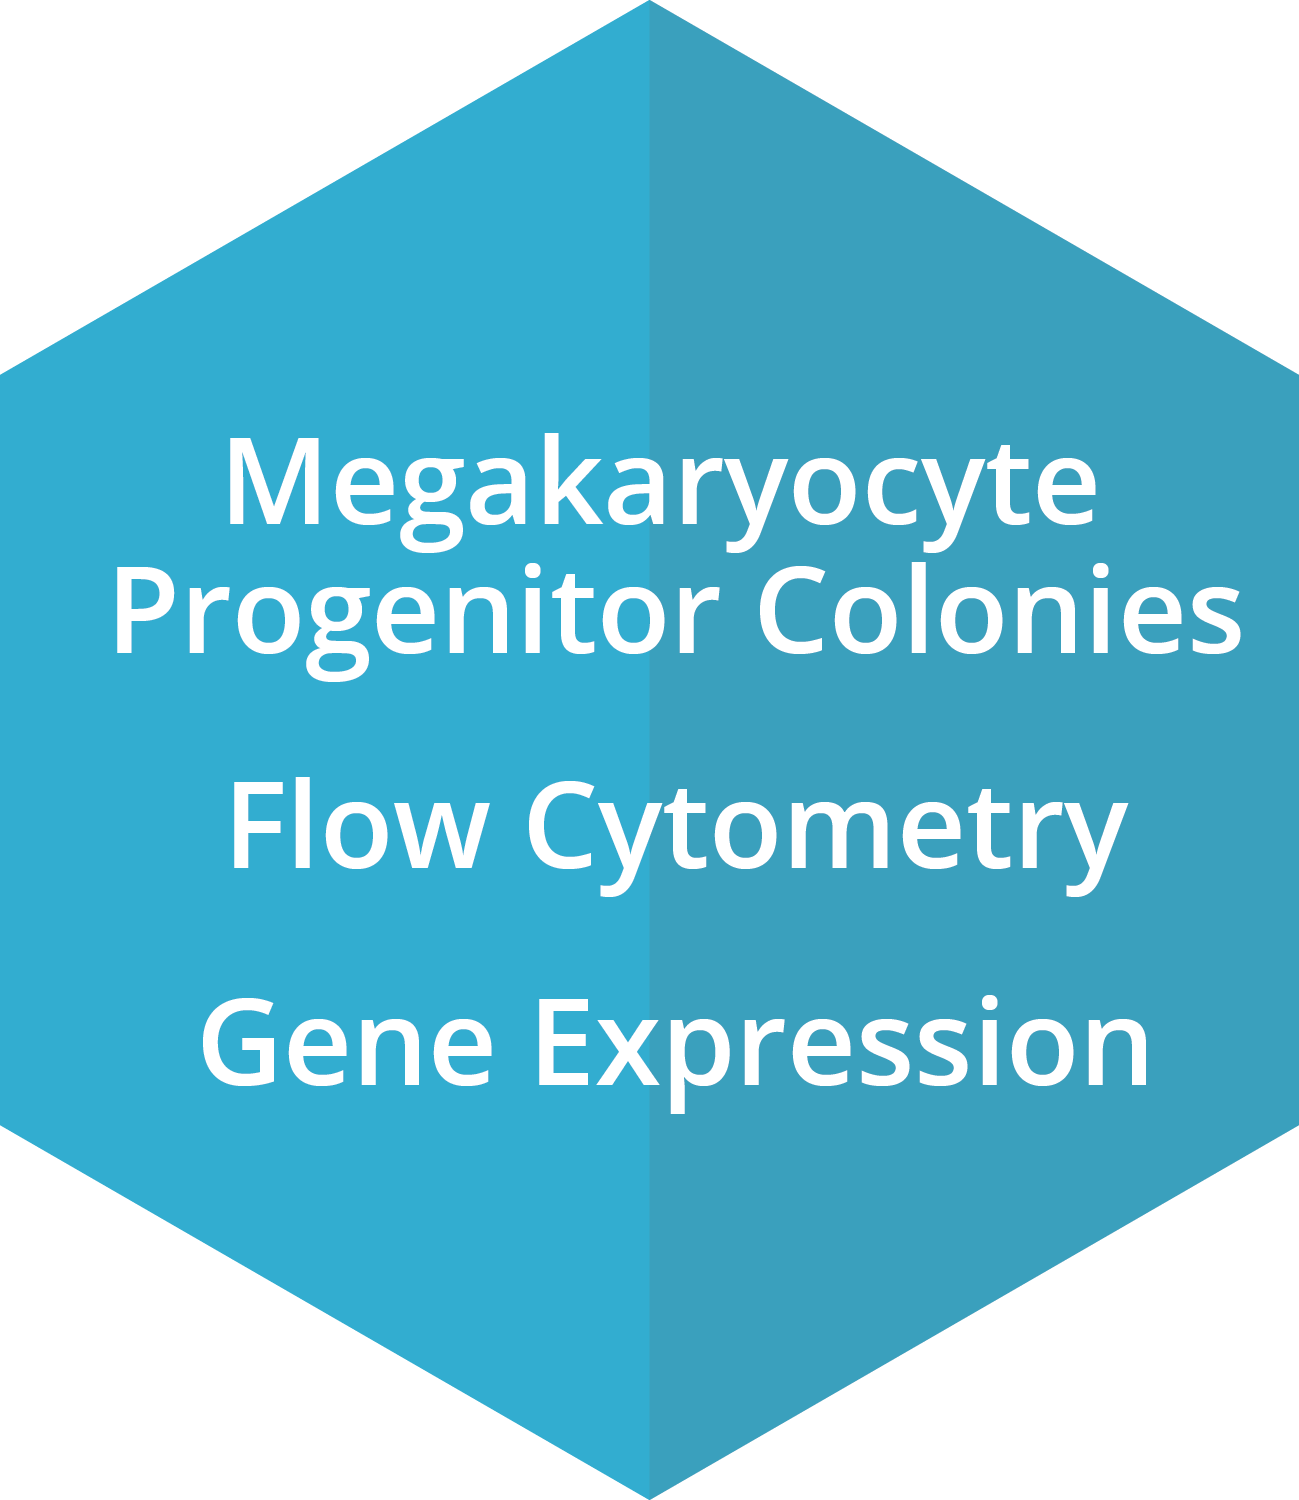 Megakaryocyte Progenitor Colonies, Flow Cytometry, Gene Expression